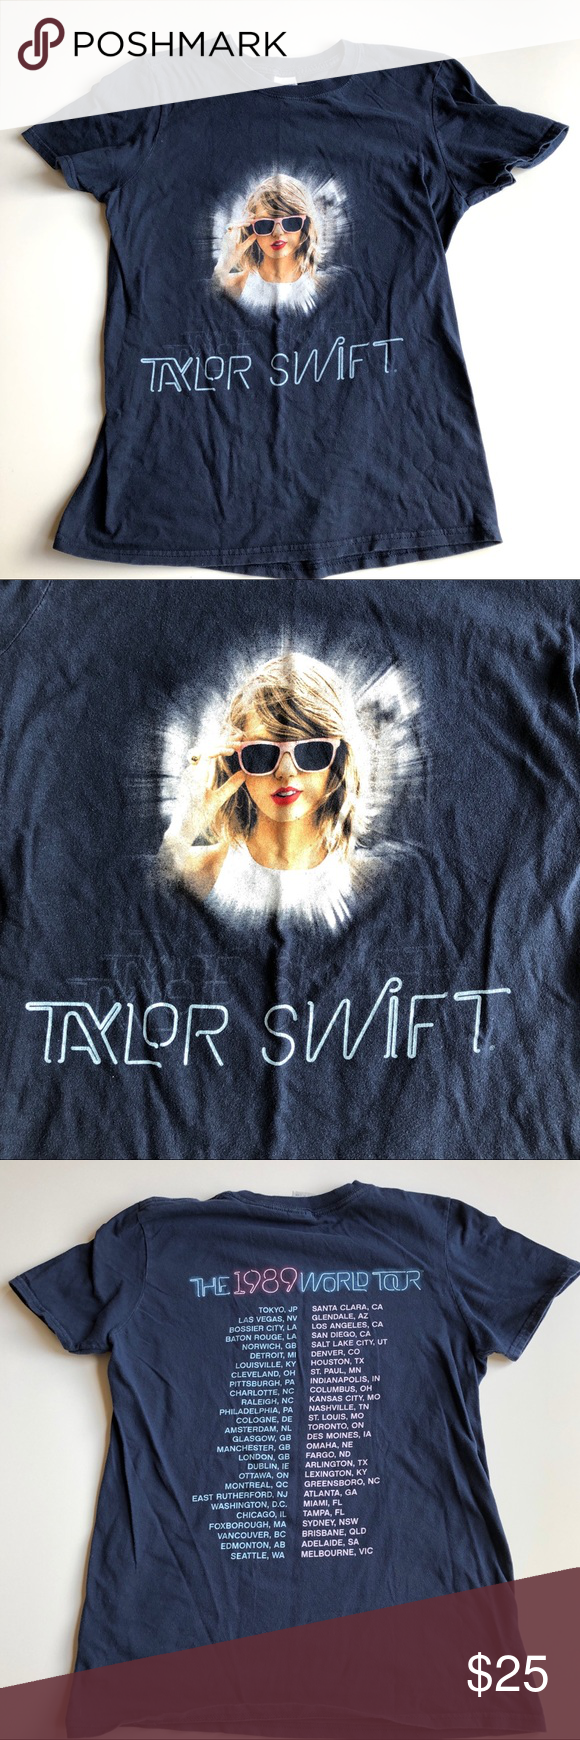 Taylor Swift concert graphic t-shirt 1989 tour S Taylor Swift concert graphic t-shirt | The 1989 world tour. Size small in excellent condition. Tops Tees - Short Sleeve #countryconcertoutfit